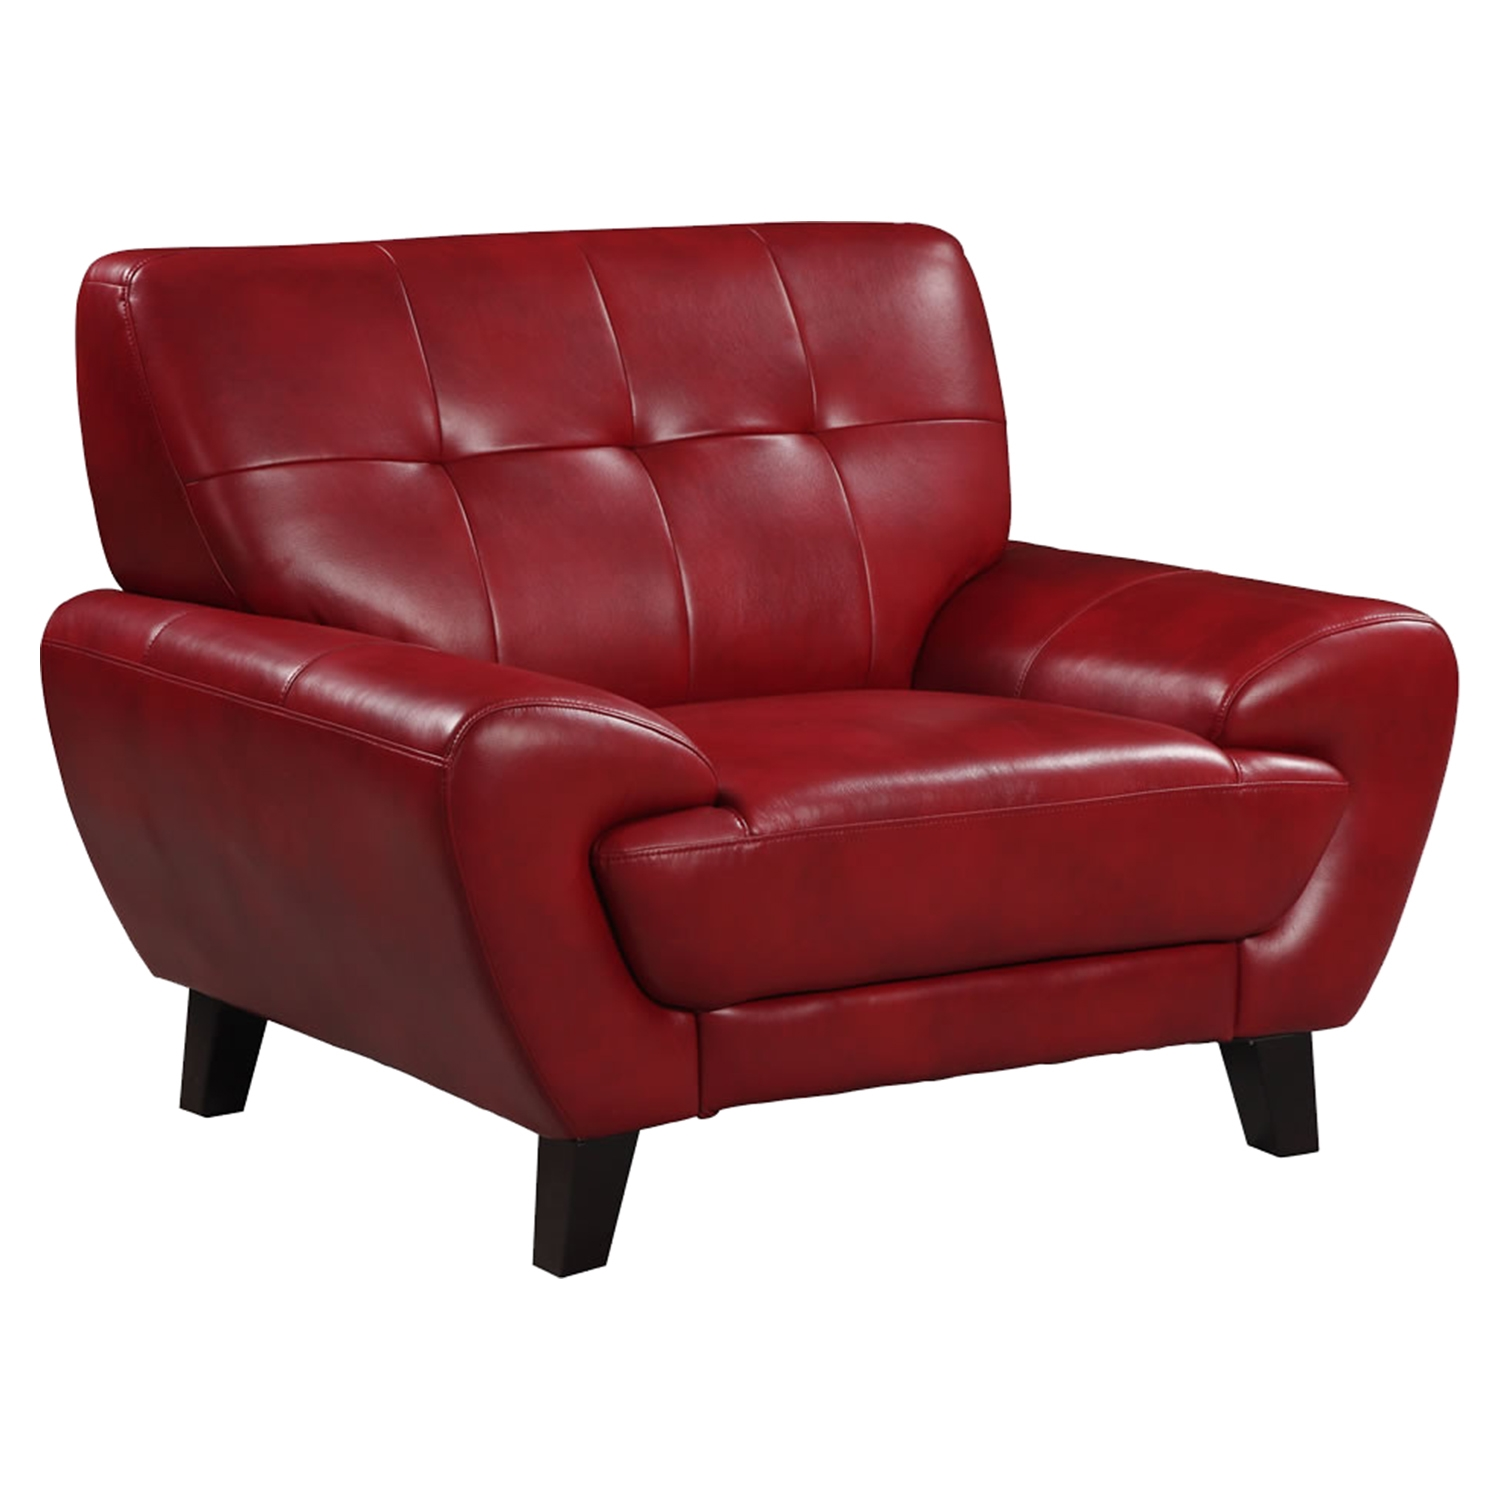 Juliana Leather Chair in Blanche Red